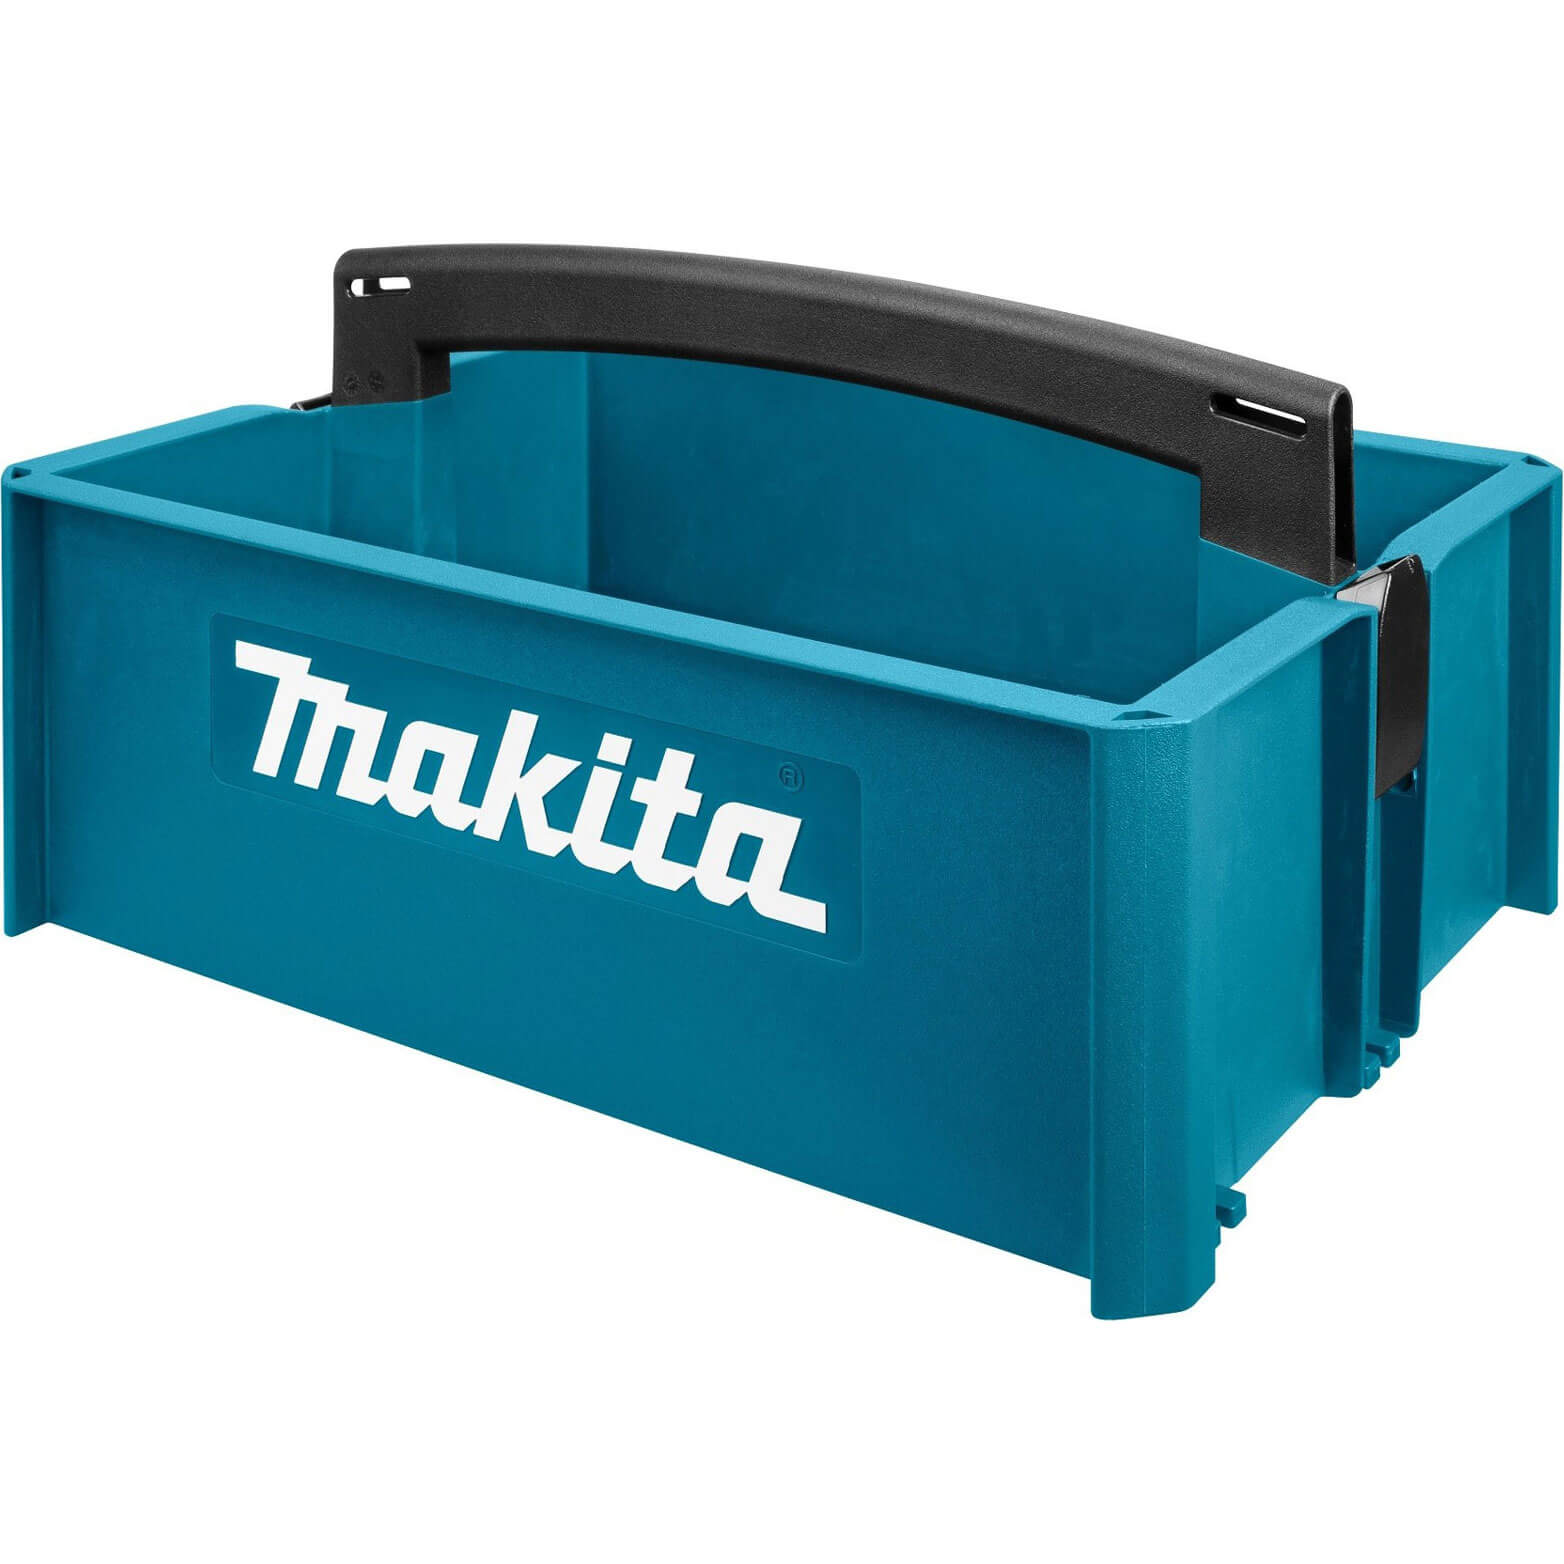 Image of Makita MaKPac Stackable Tote Tool Box 396mm 296mm 145mm